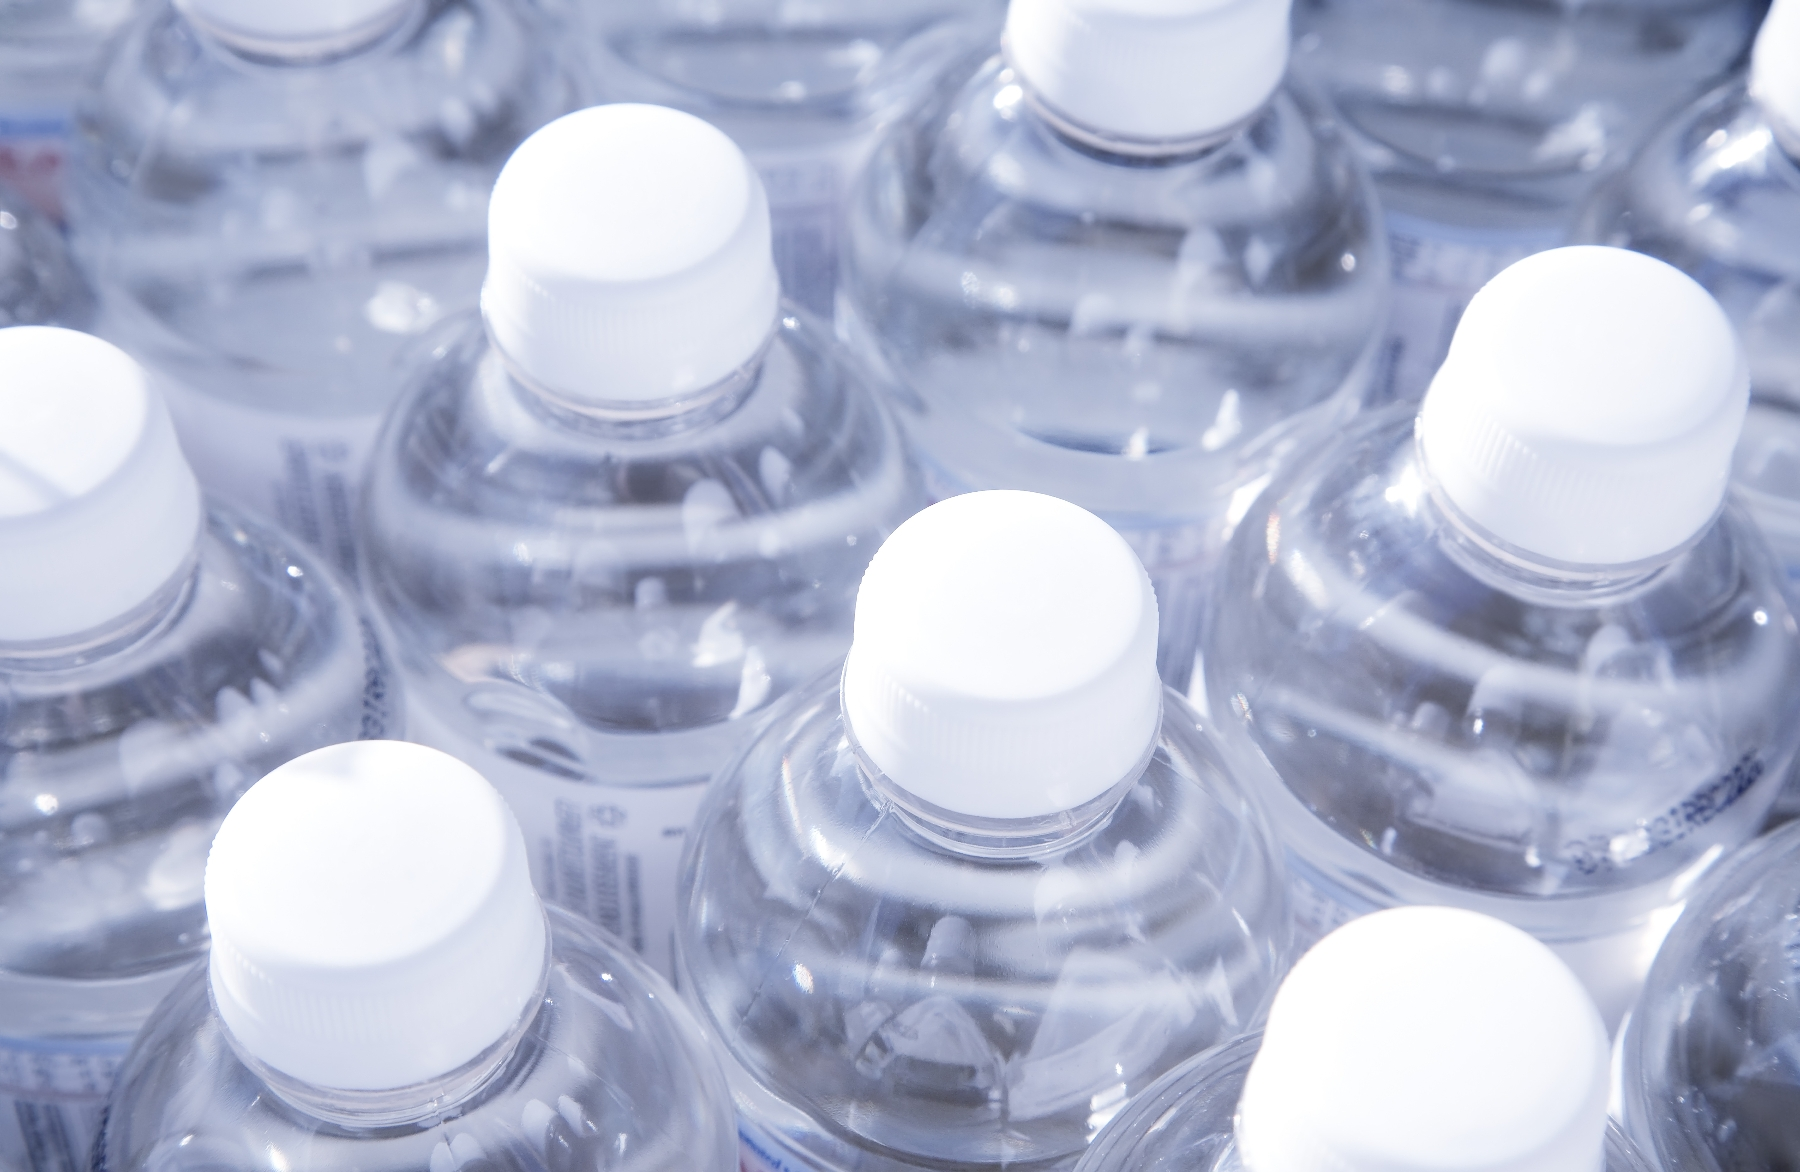 Nashville Rescue Mission in Desperate Need of Bottled Water